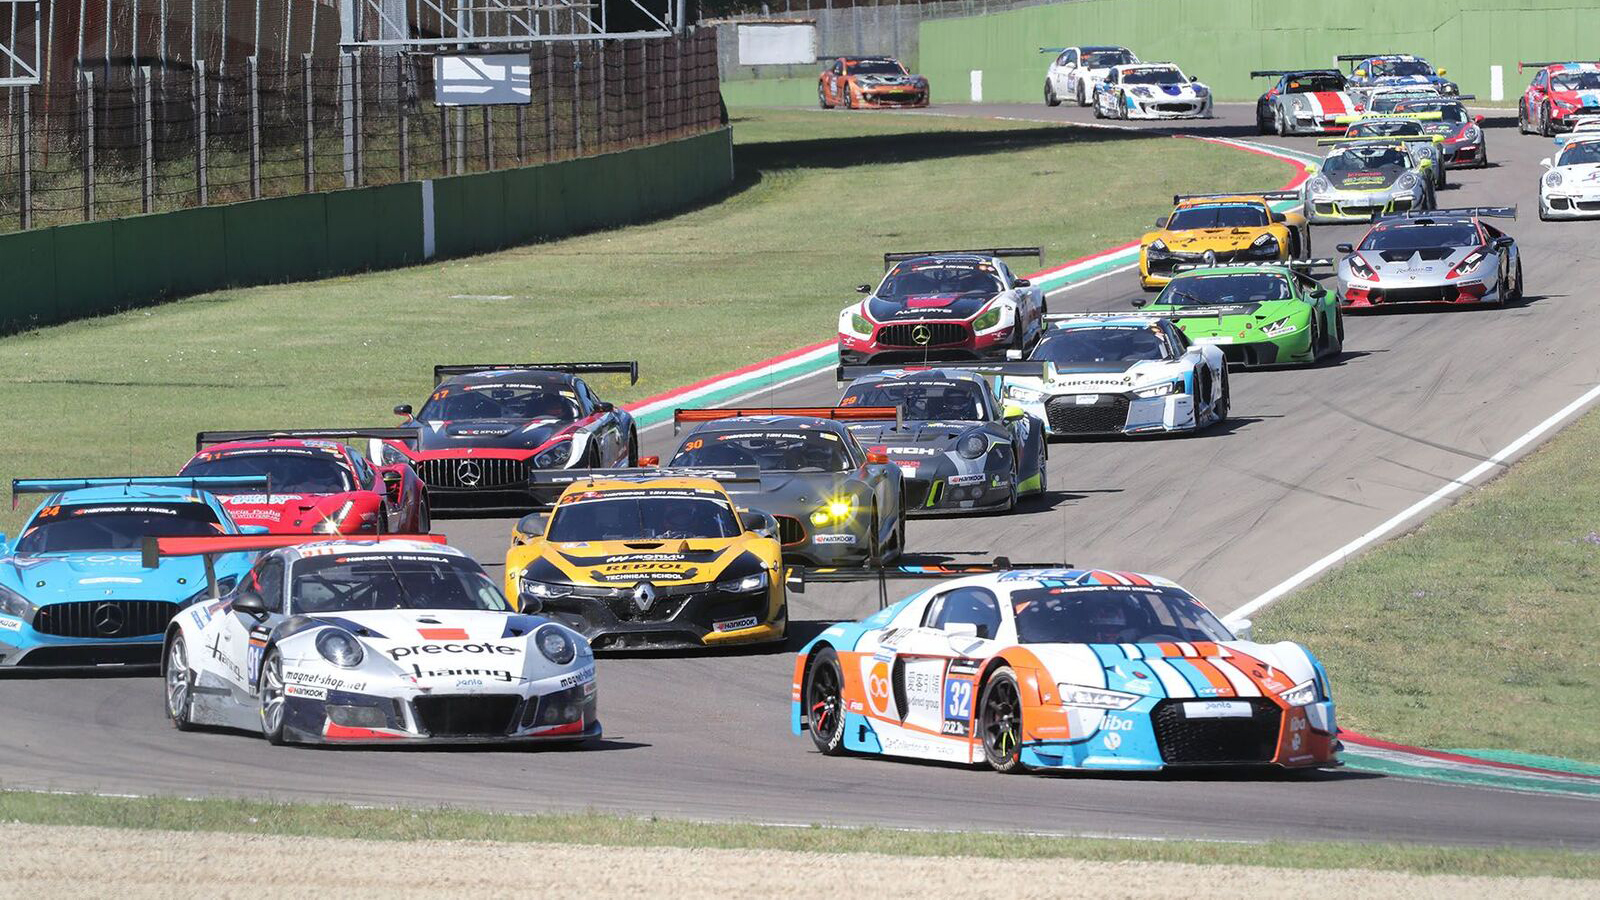 Corse, GT Series: over 50 cars in the Santerno circuit competing for the 12h Imola.